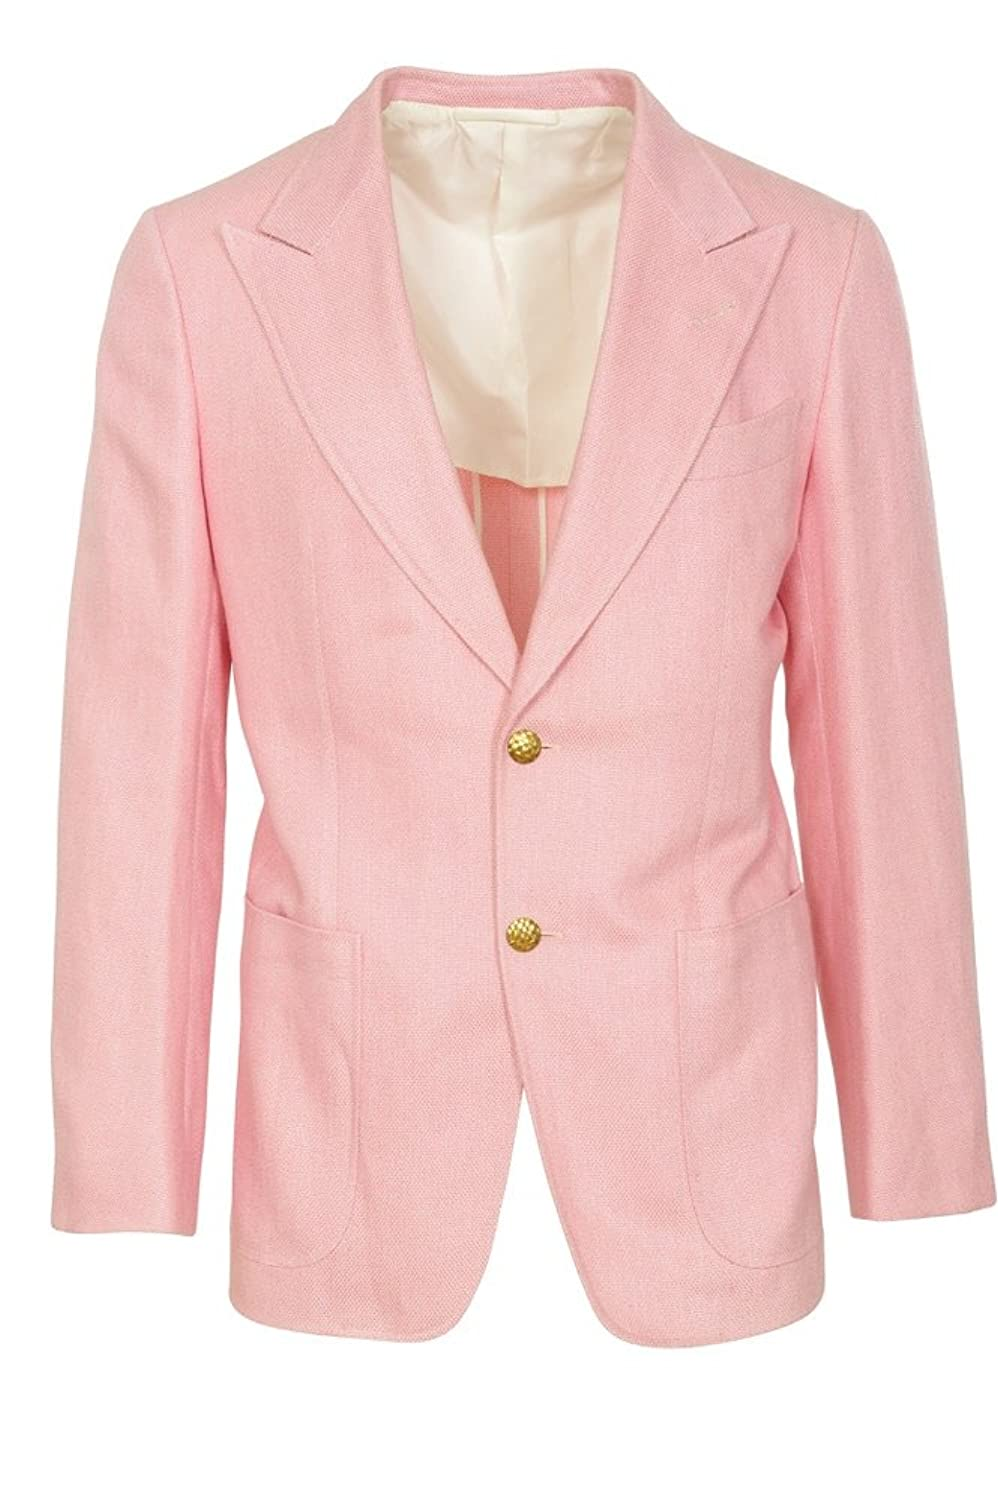 Tom Ford Blazer Mens Pink Only Blazer Rose 46R Regular Fit at Amazon Mens Clothing store: